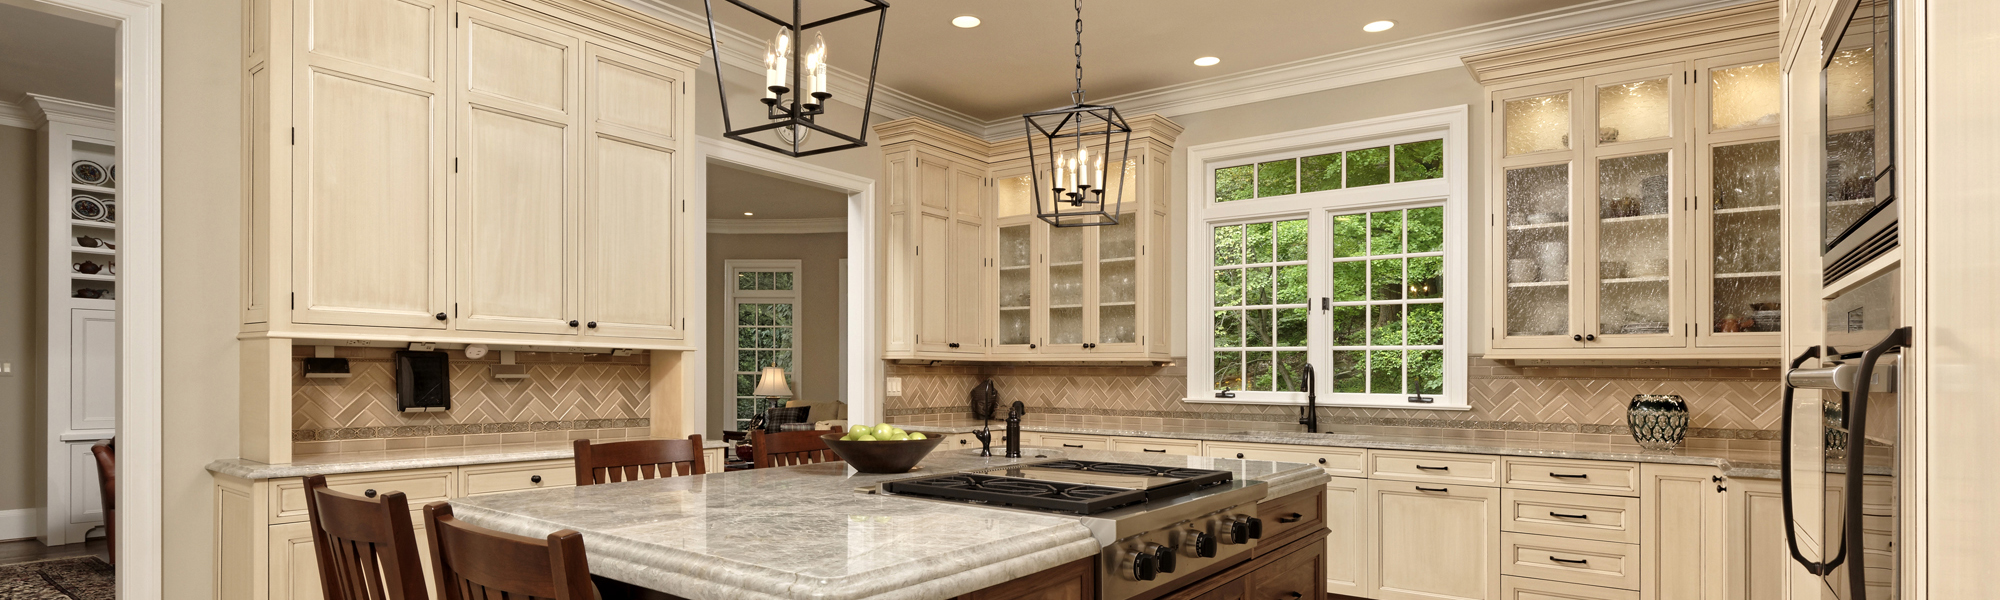 McLean Home Renovation Kitchen